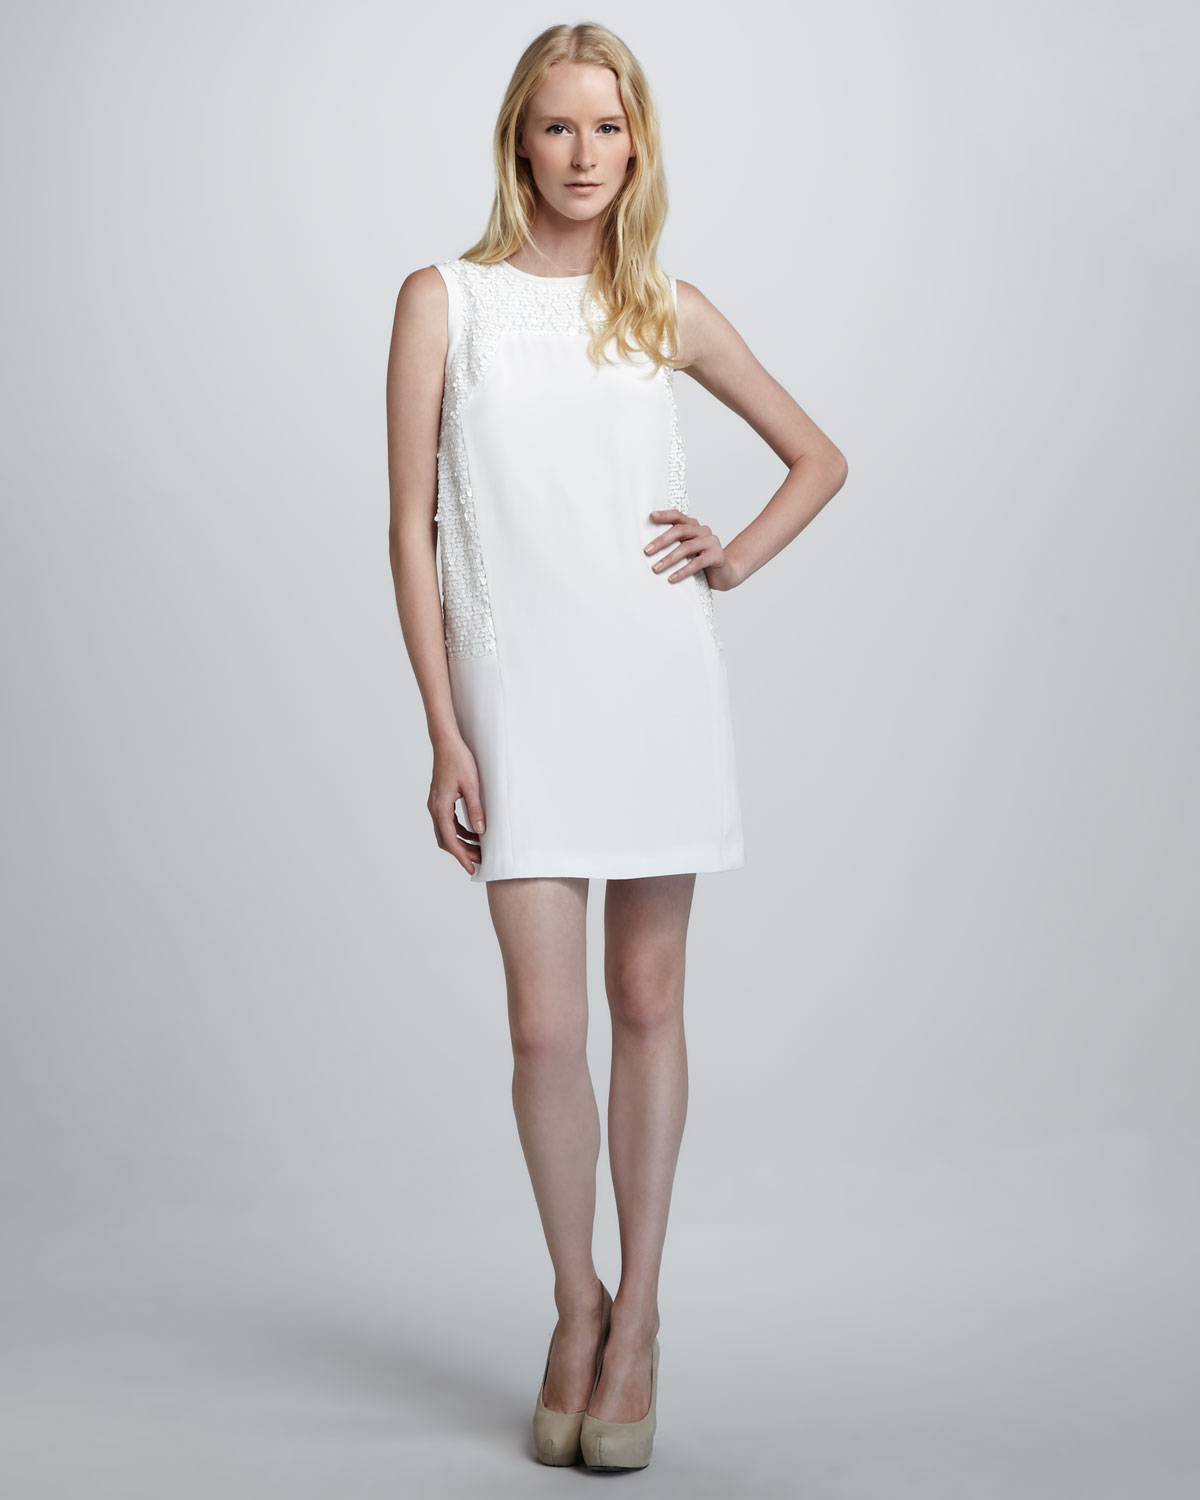 Lyst - Tibi Sleeveless Sequined Cocktail Dress in White